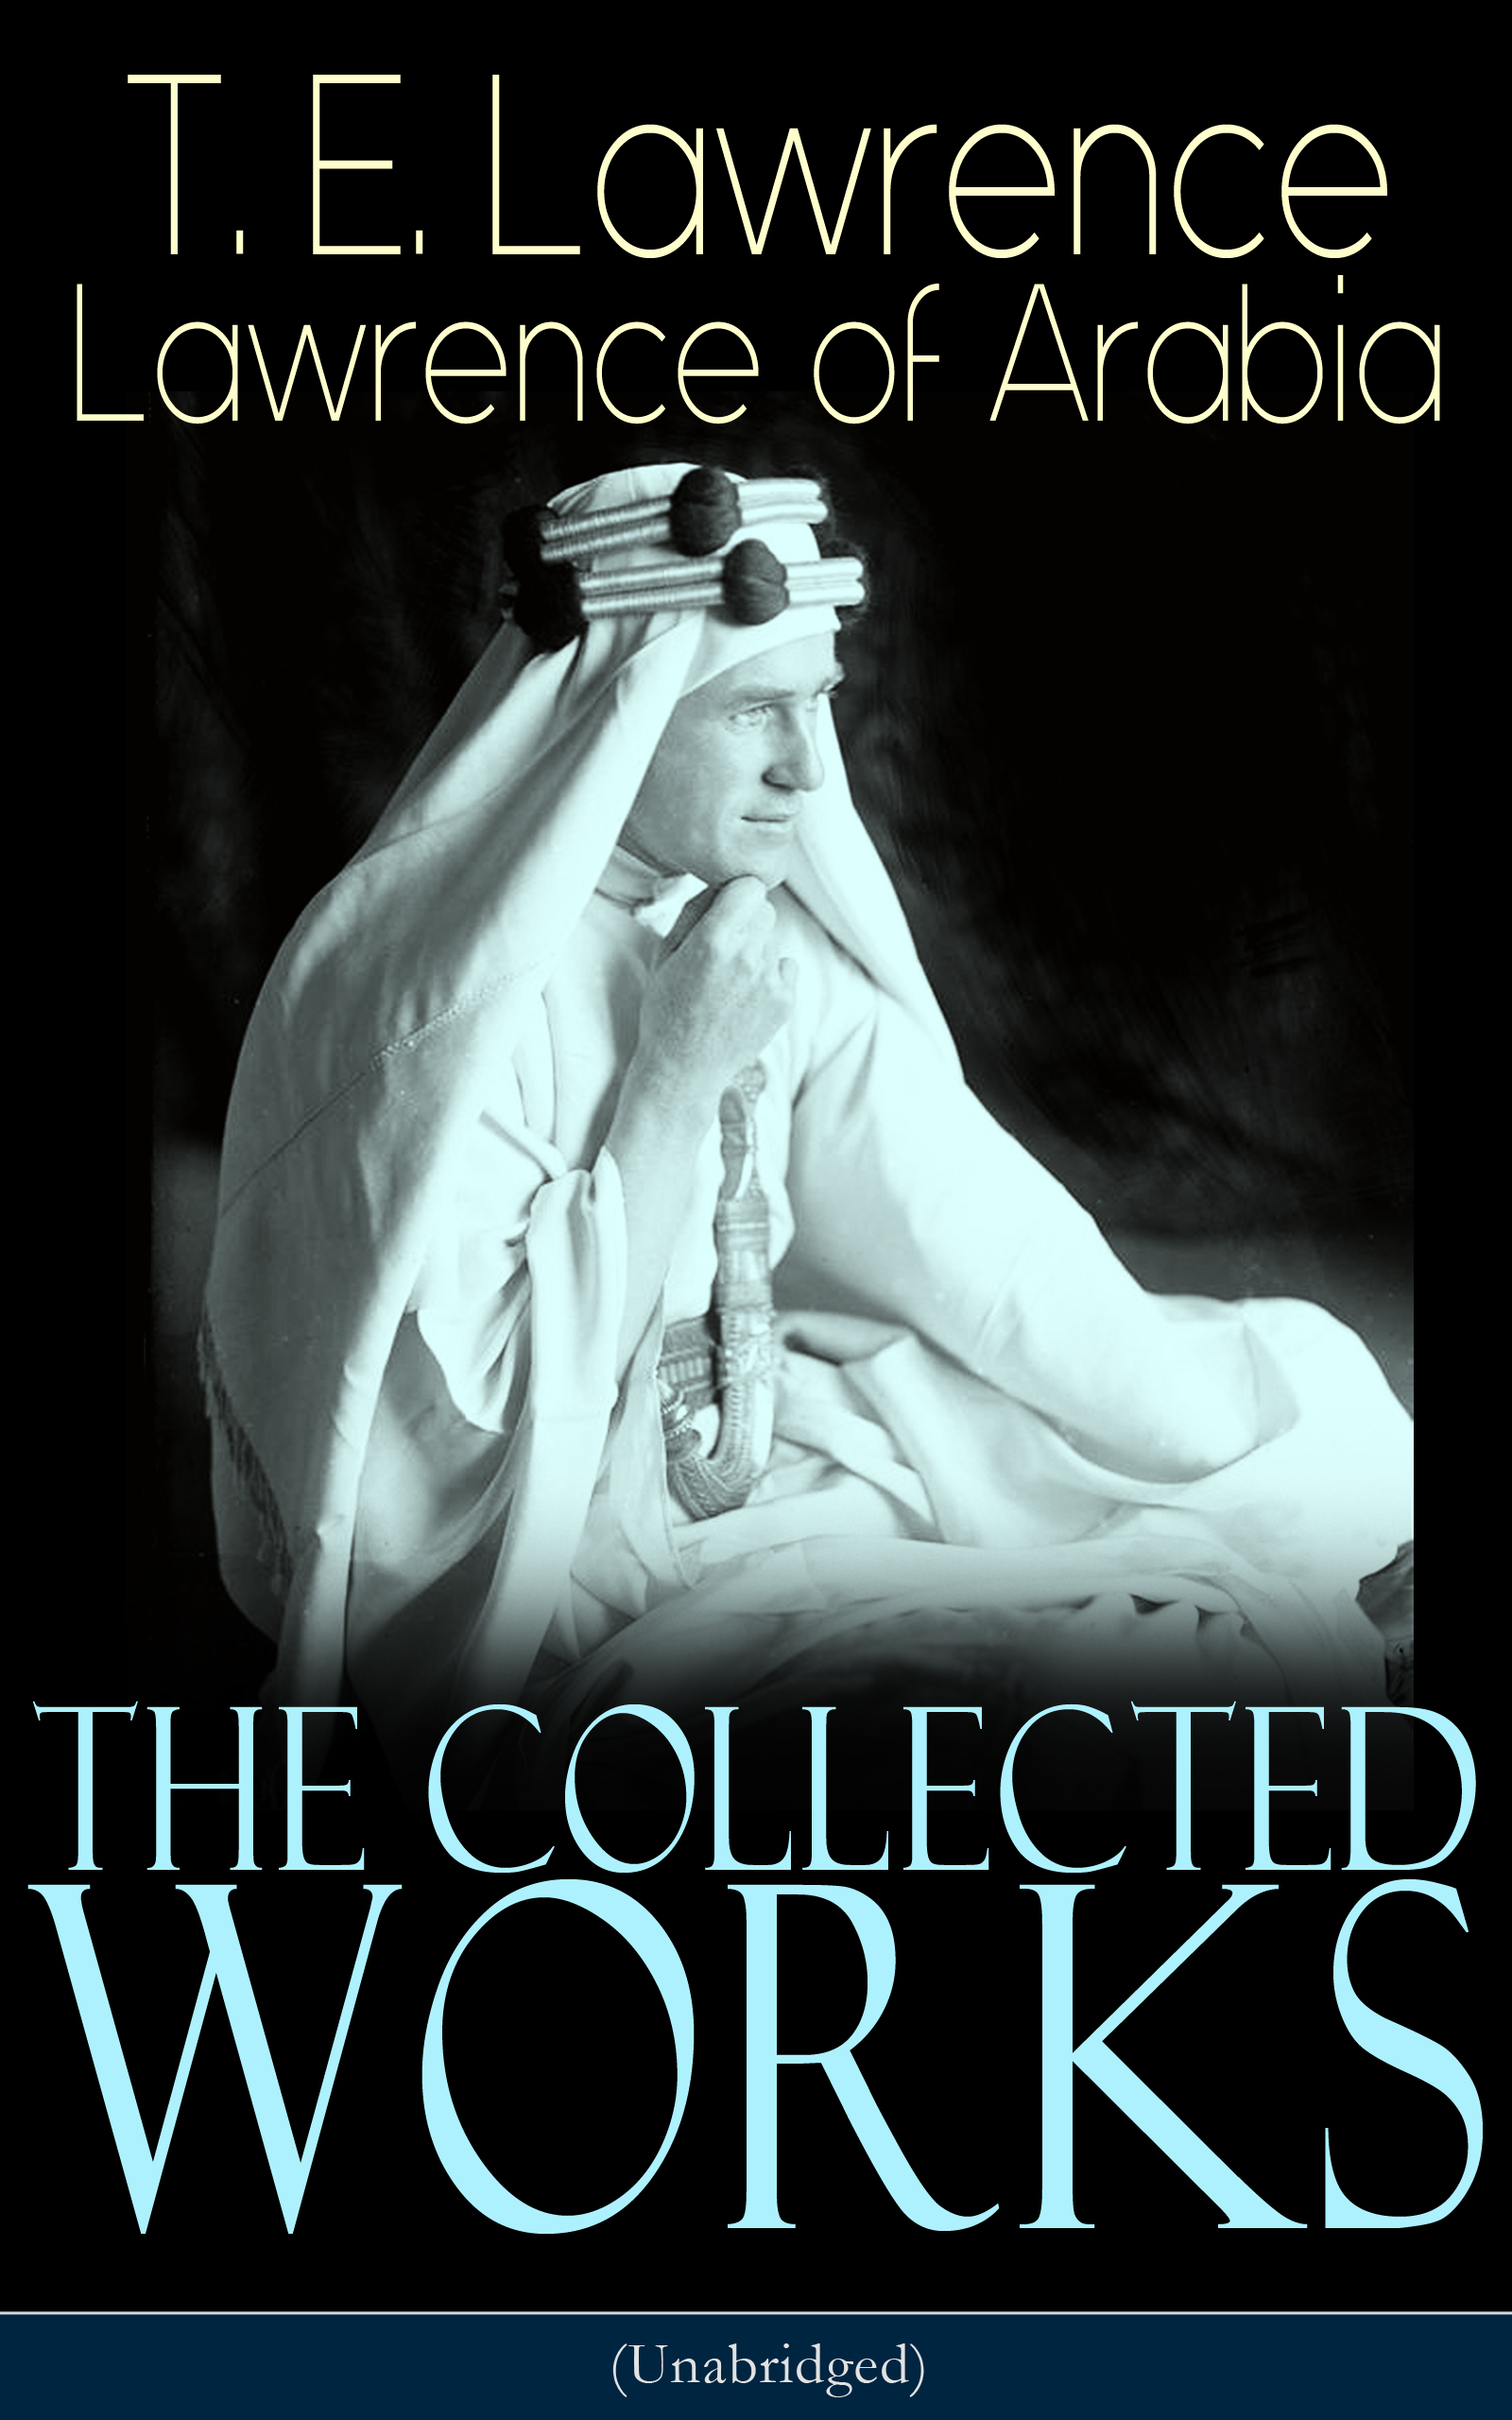 T. E. Lawrence The Collected Works of Lawrence of Arabia (Unabridged) t e lawrence the collected works of lawrence of arabia unabridged